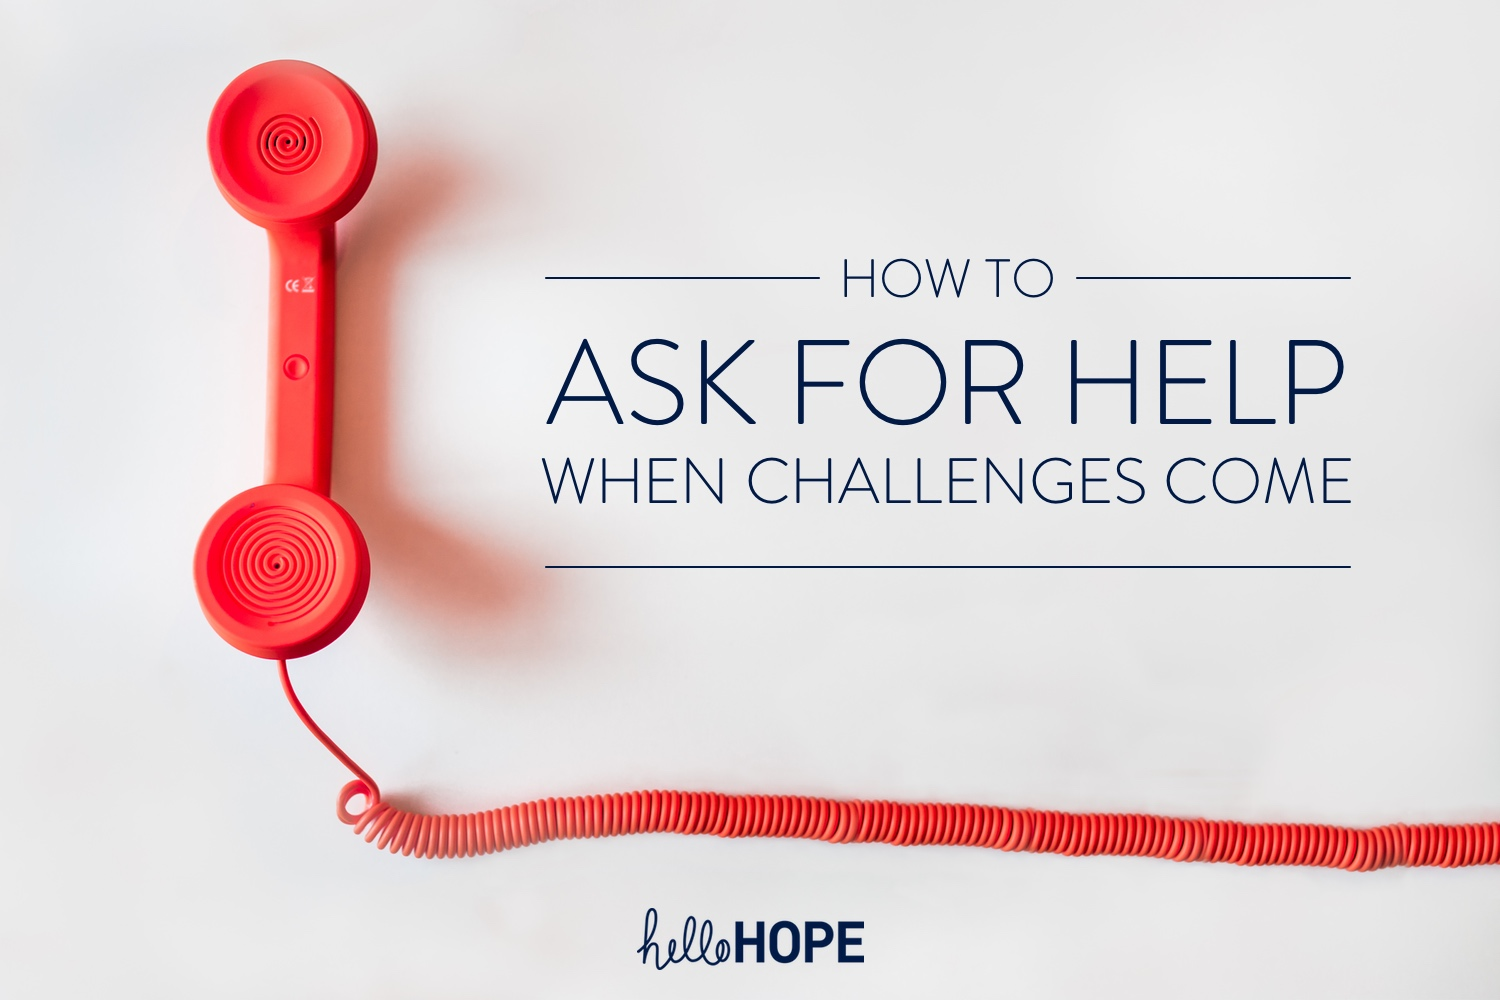 Red telephone on white background | How to Ask for Help When Challenges Come